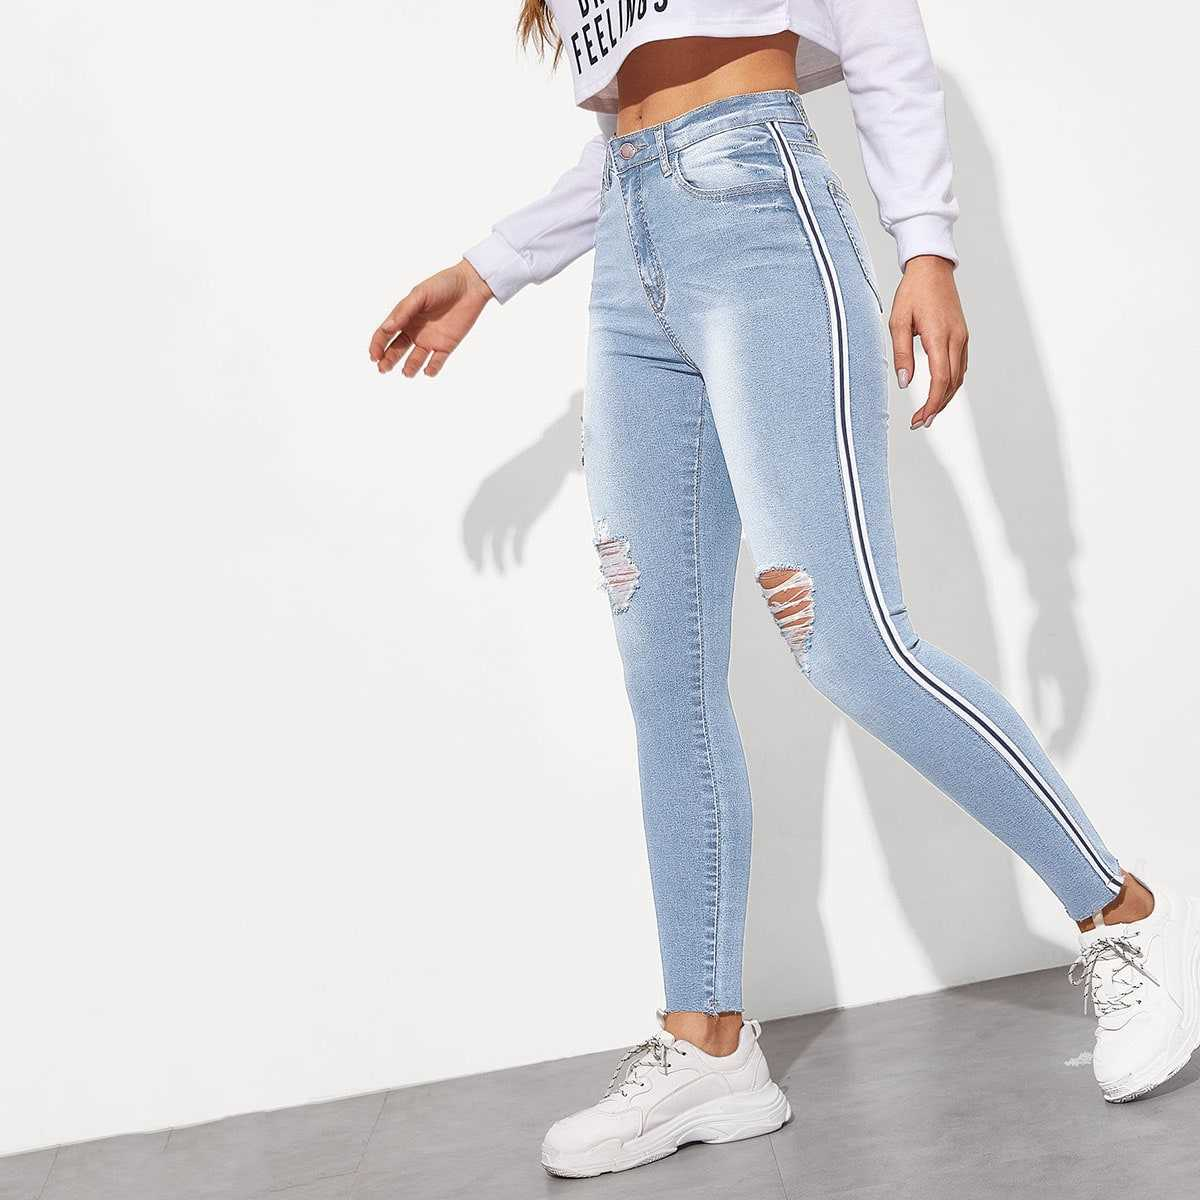 Side Striped Ripped Wash Jeans in Blue by ROMWE on GOOFASH